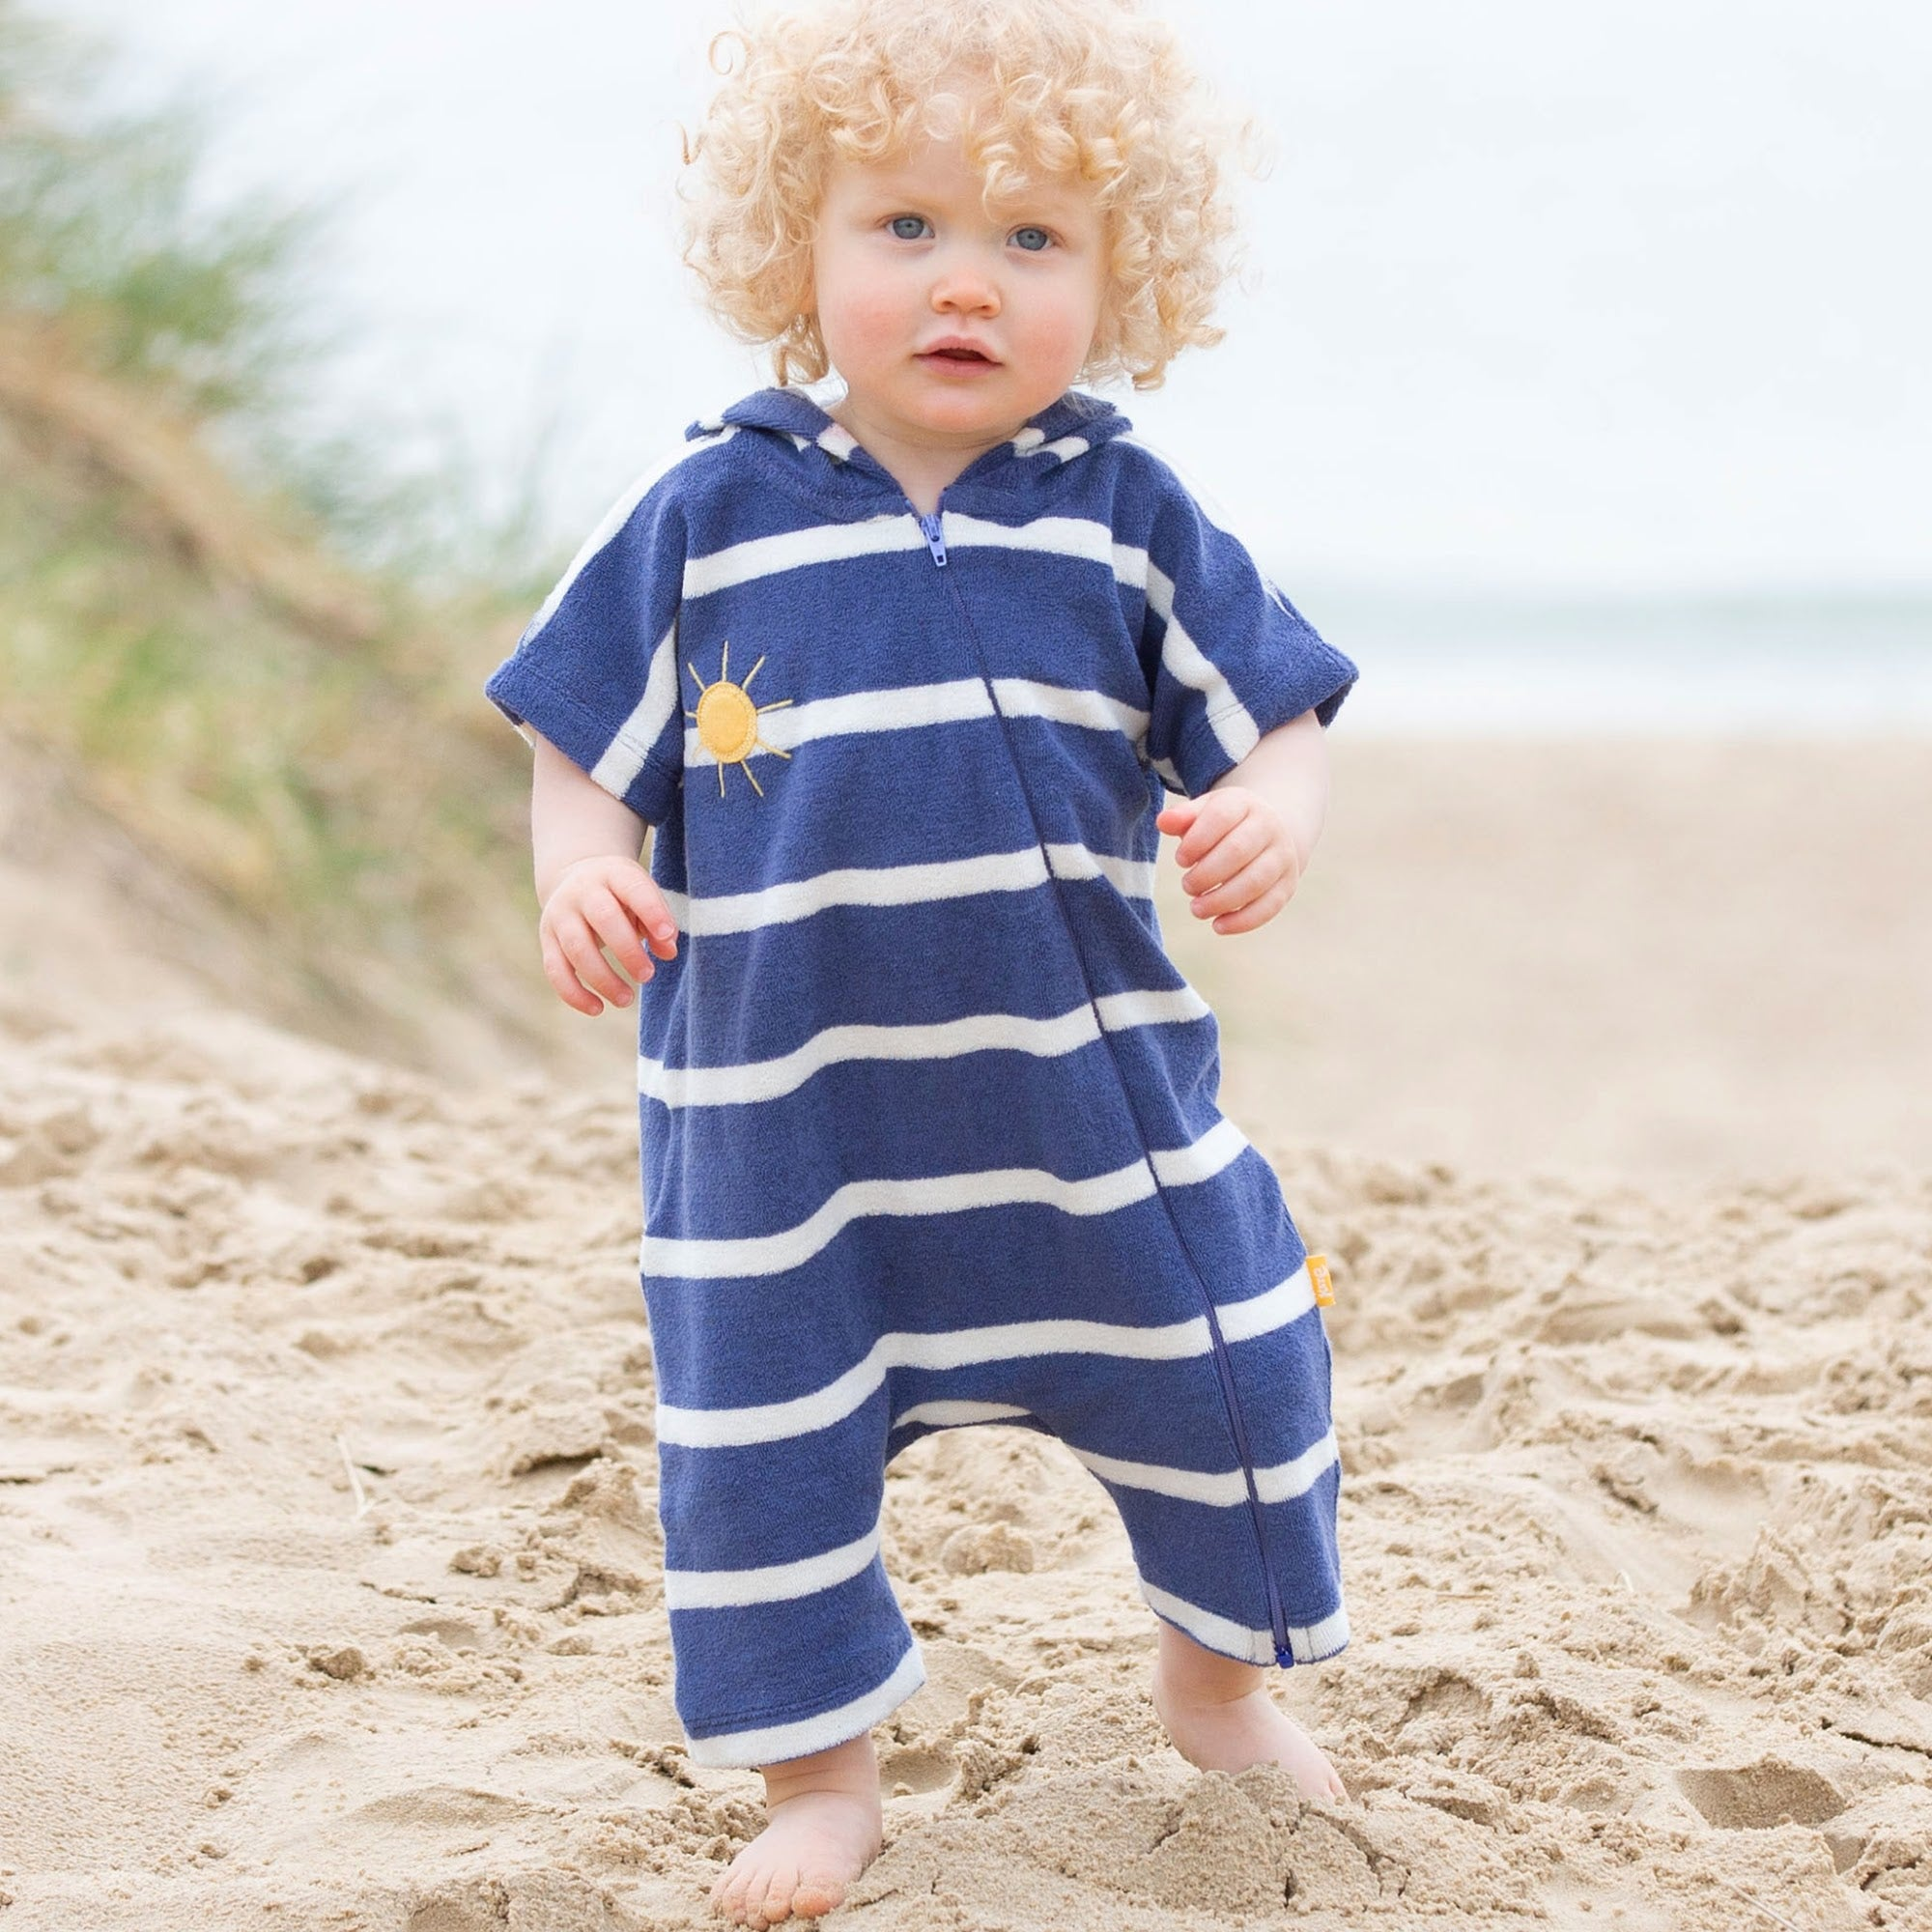 Kite Beach Time Cover Up SALE